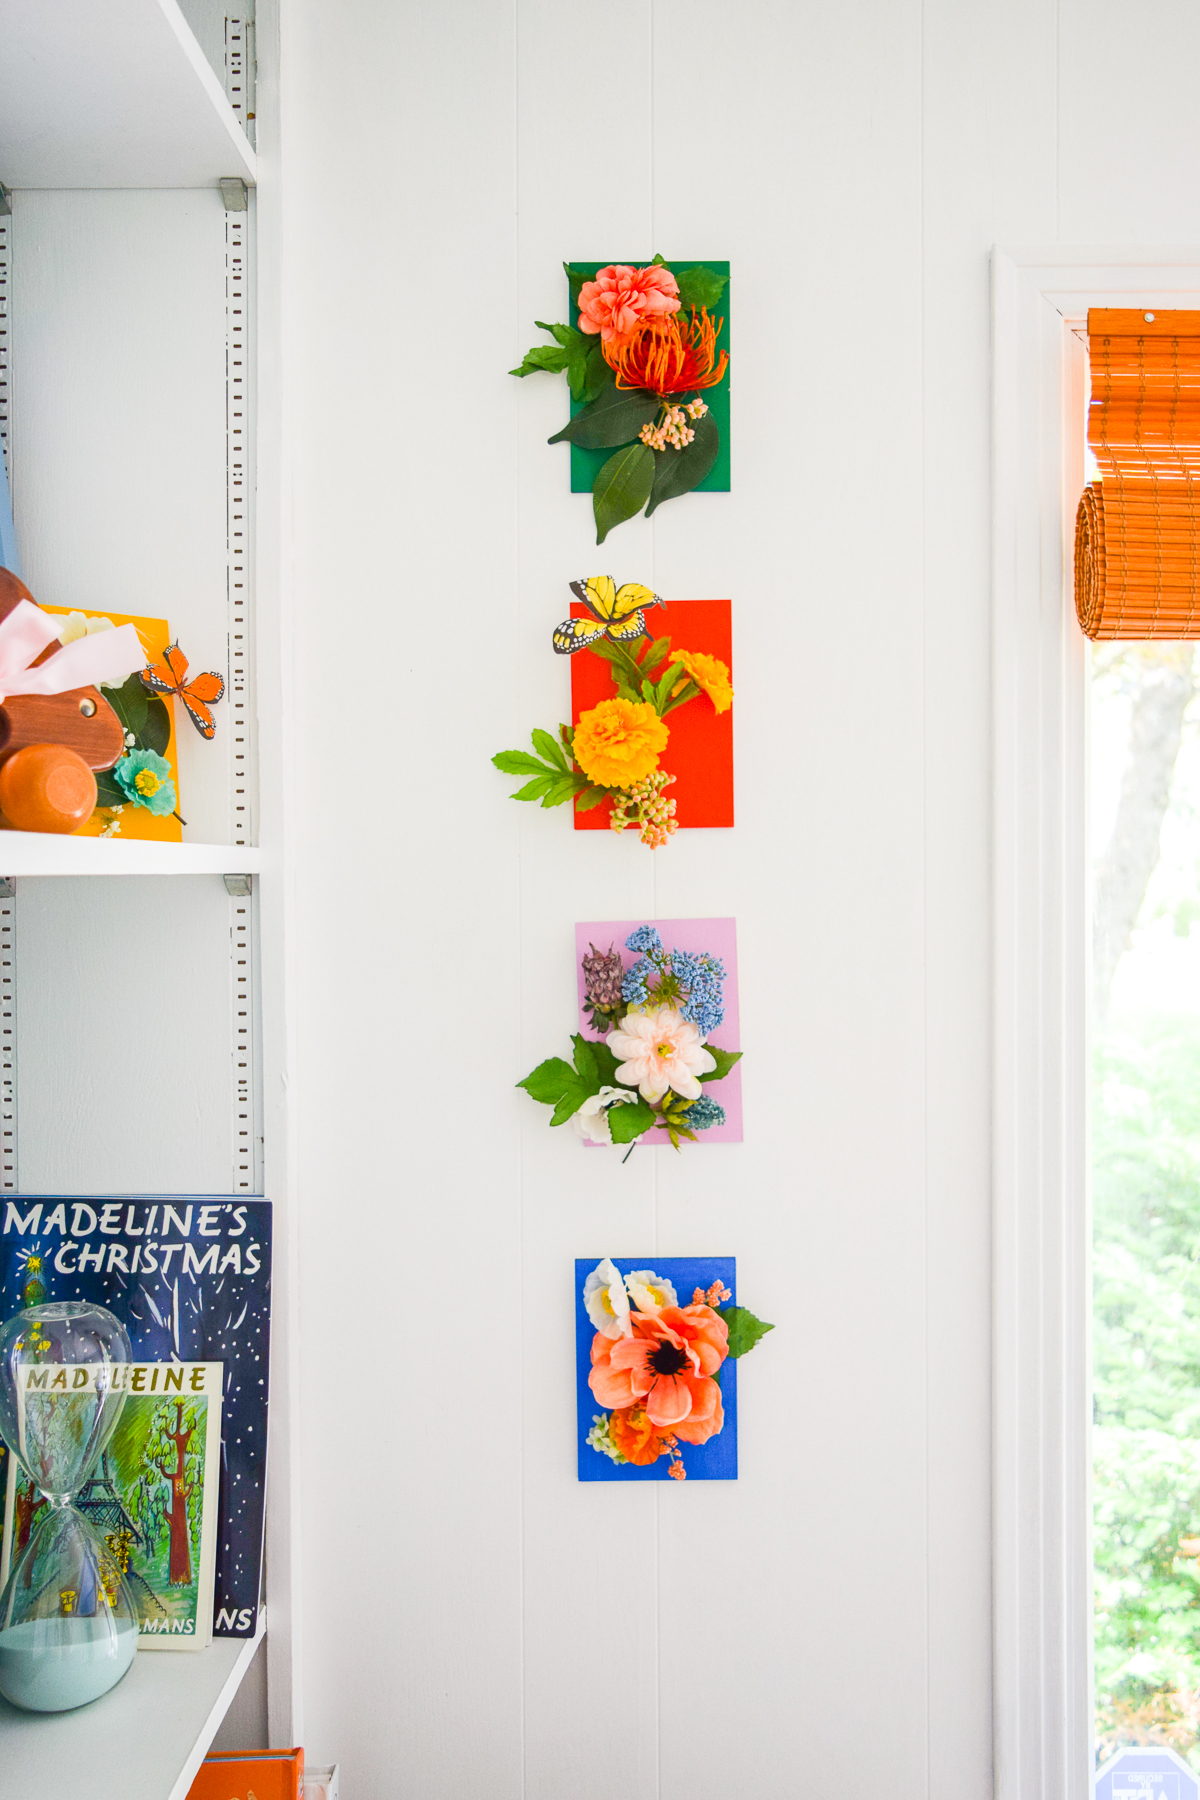 I've never done a nursery, but I do know how to make faux floral wall art - inspired by Rifle Paper Co. - and you can too! You just need the right tools. My Powercut Snips from Fiskars cut right through the wire stems, making them easy to position.